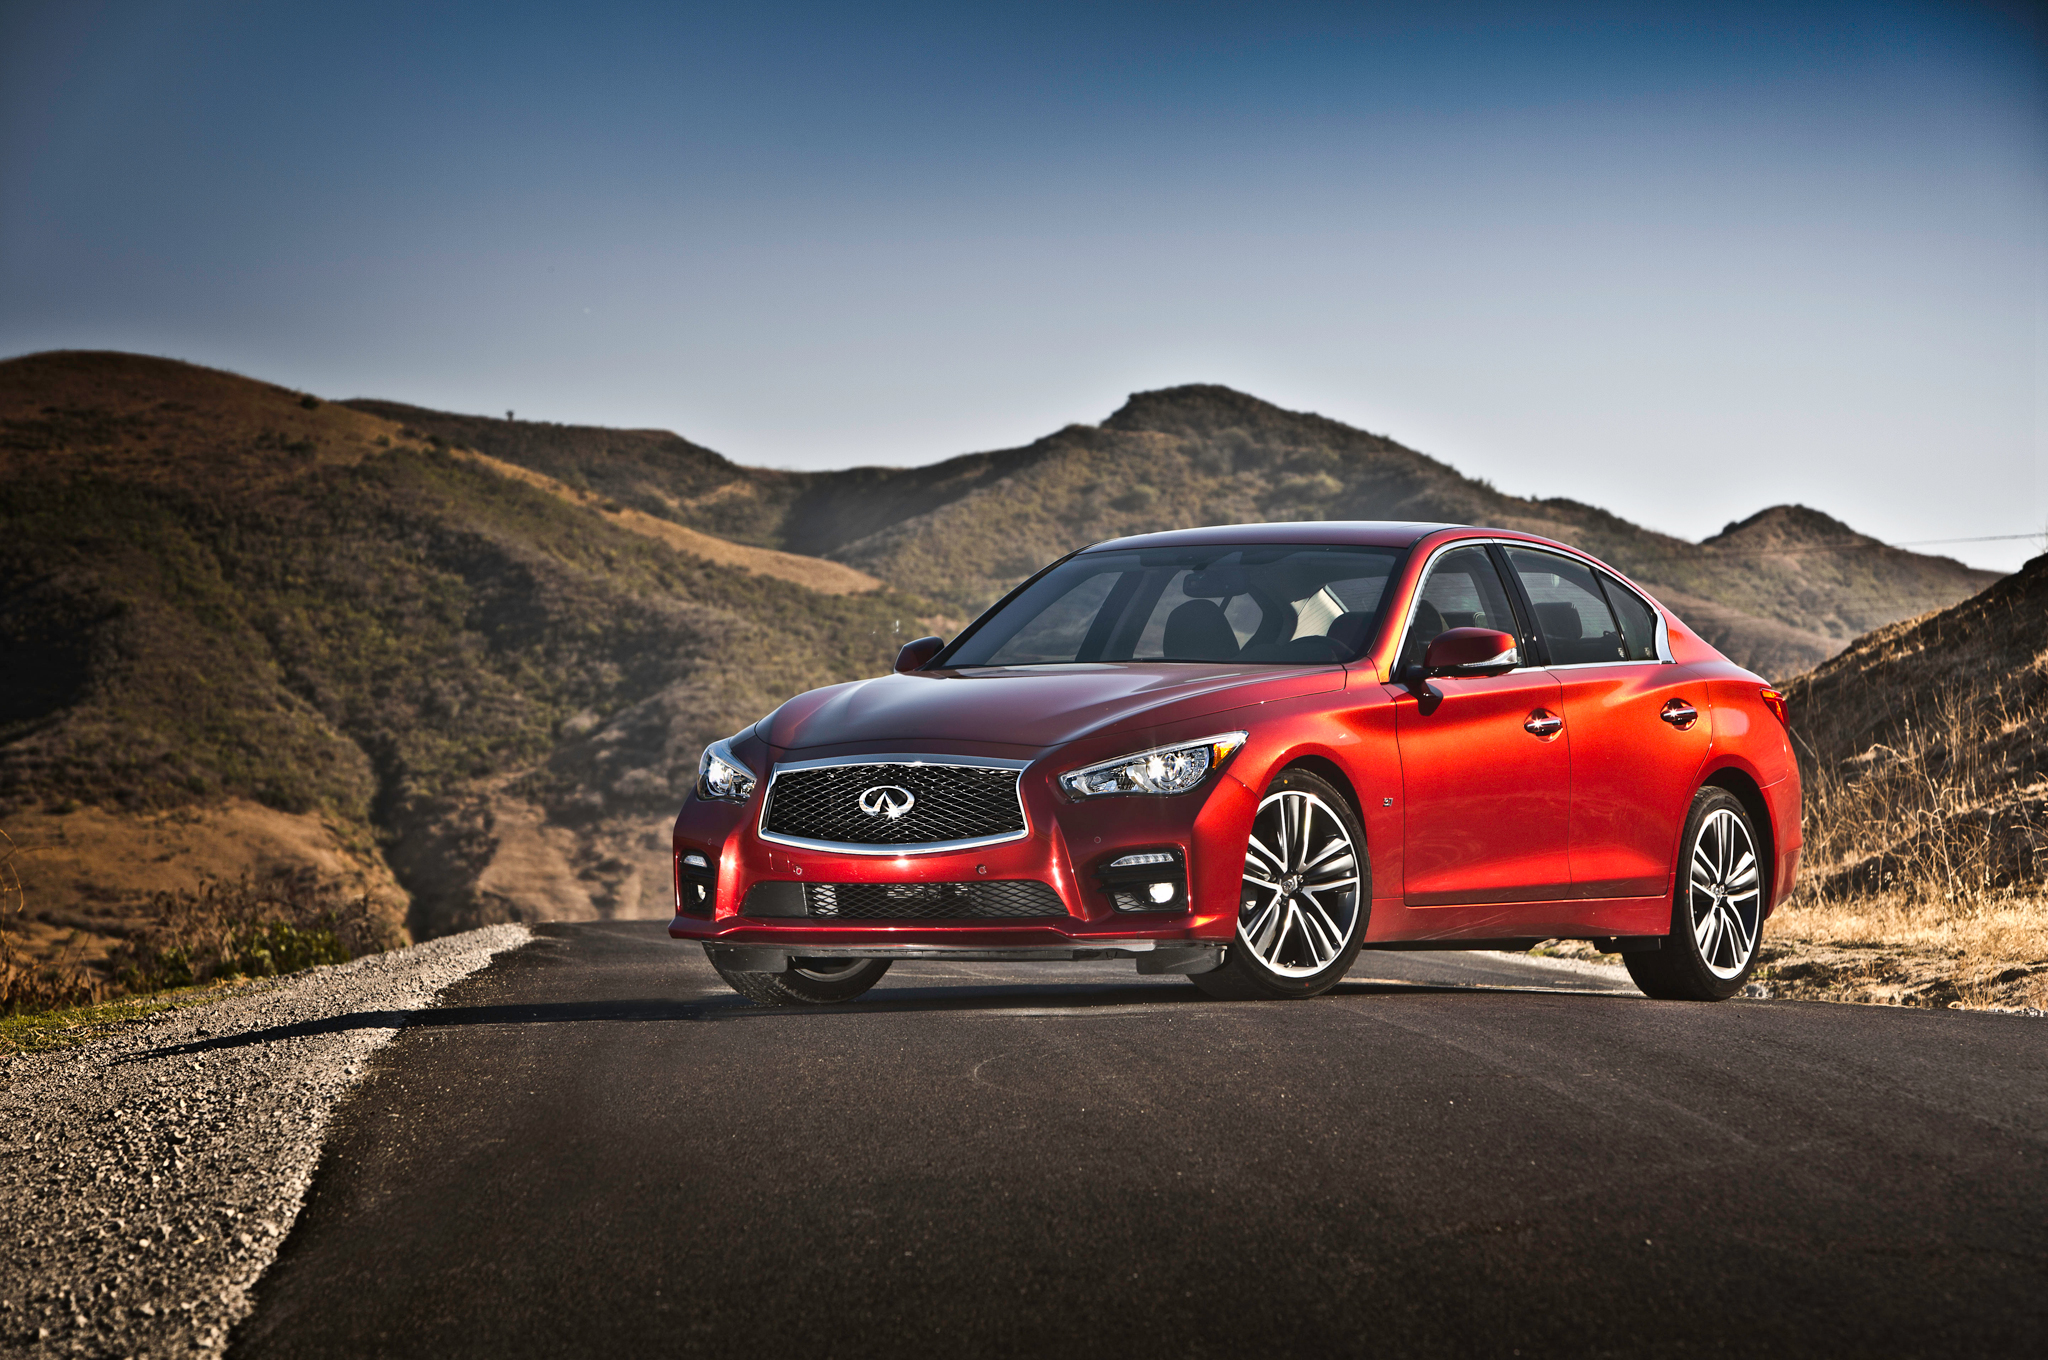 By The Numbers 2014 Infiniti Q50 G37 And G35 Sedans Motor Trend